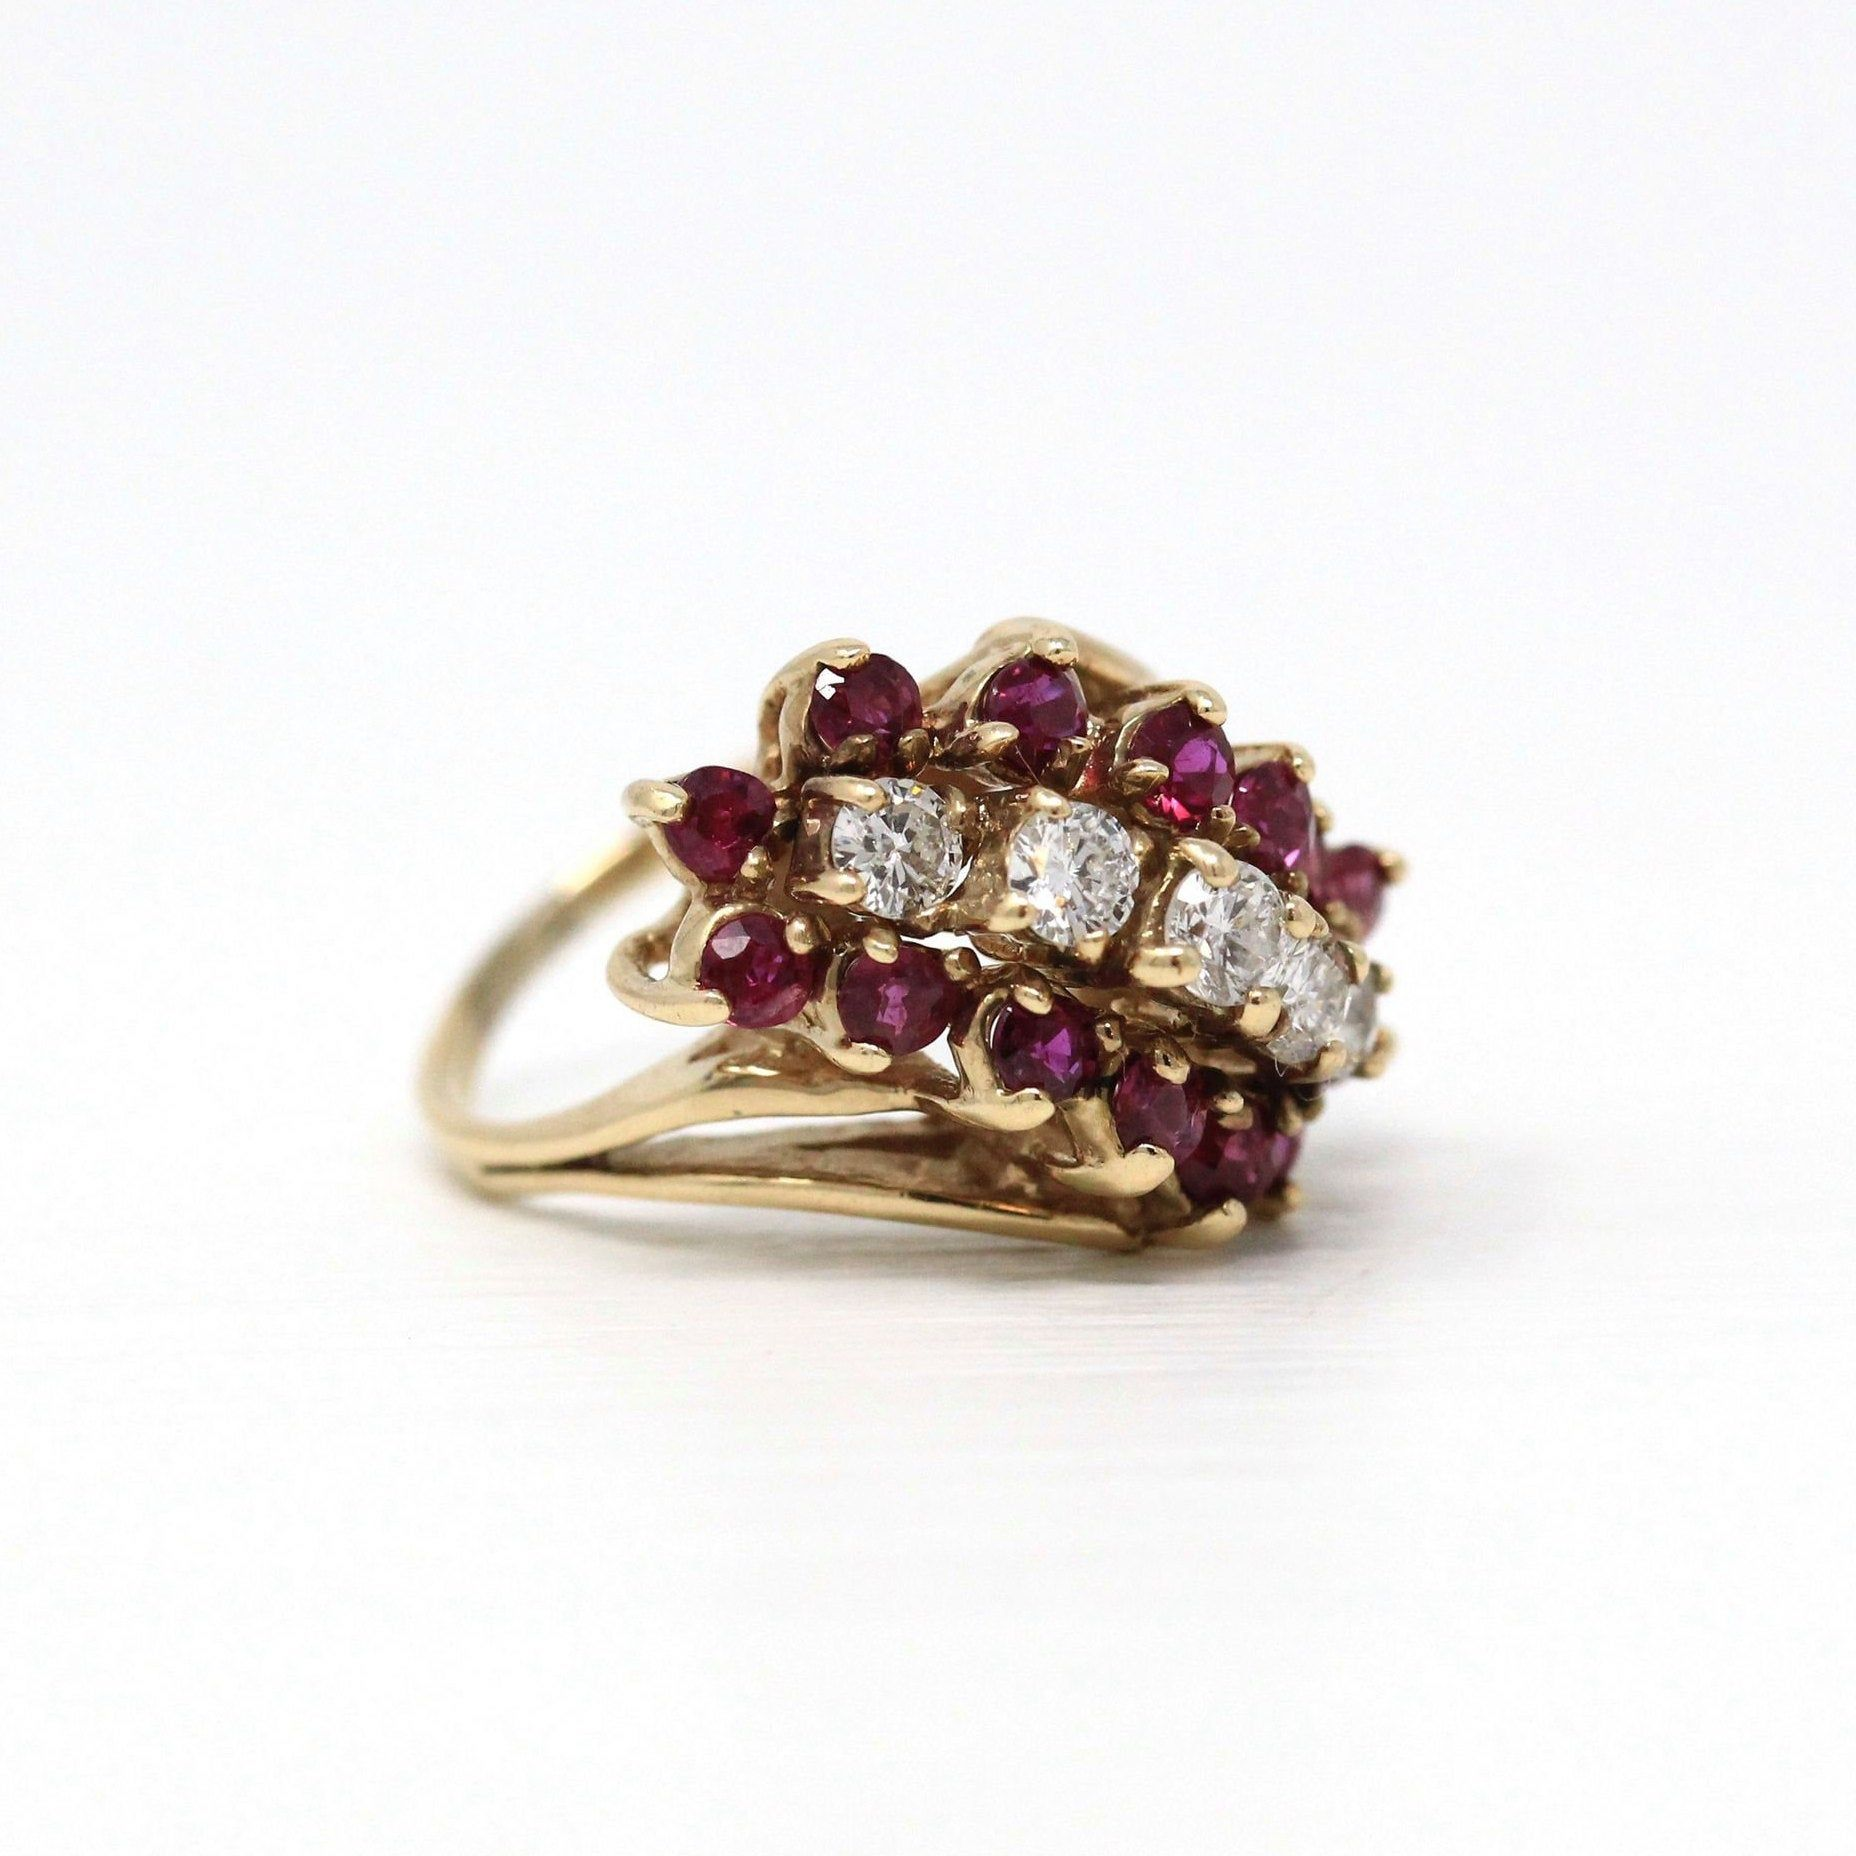 925 Sterling Silver Jewelry Studded With Natural Ruby Gemstone Enamel Ring,,Handmade Statement Ring,Cocktail Ring,New Arrival Women Ring